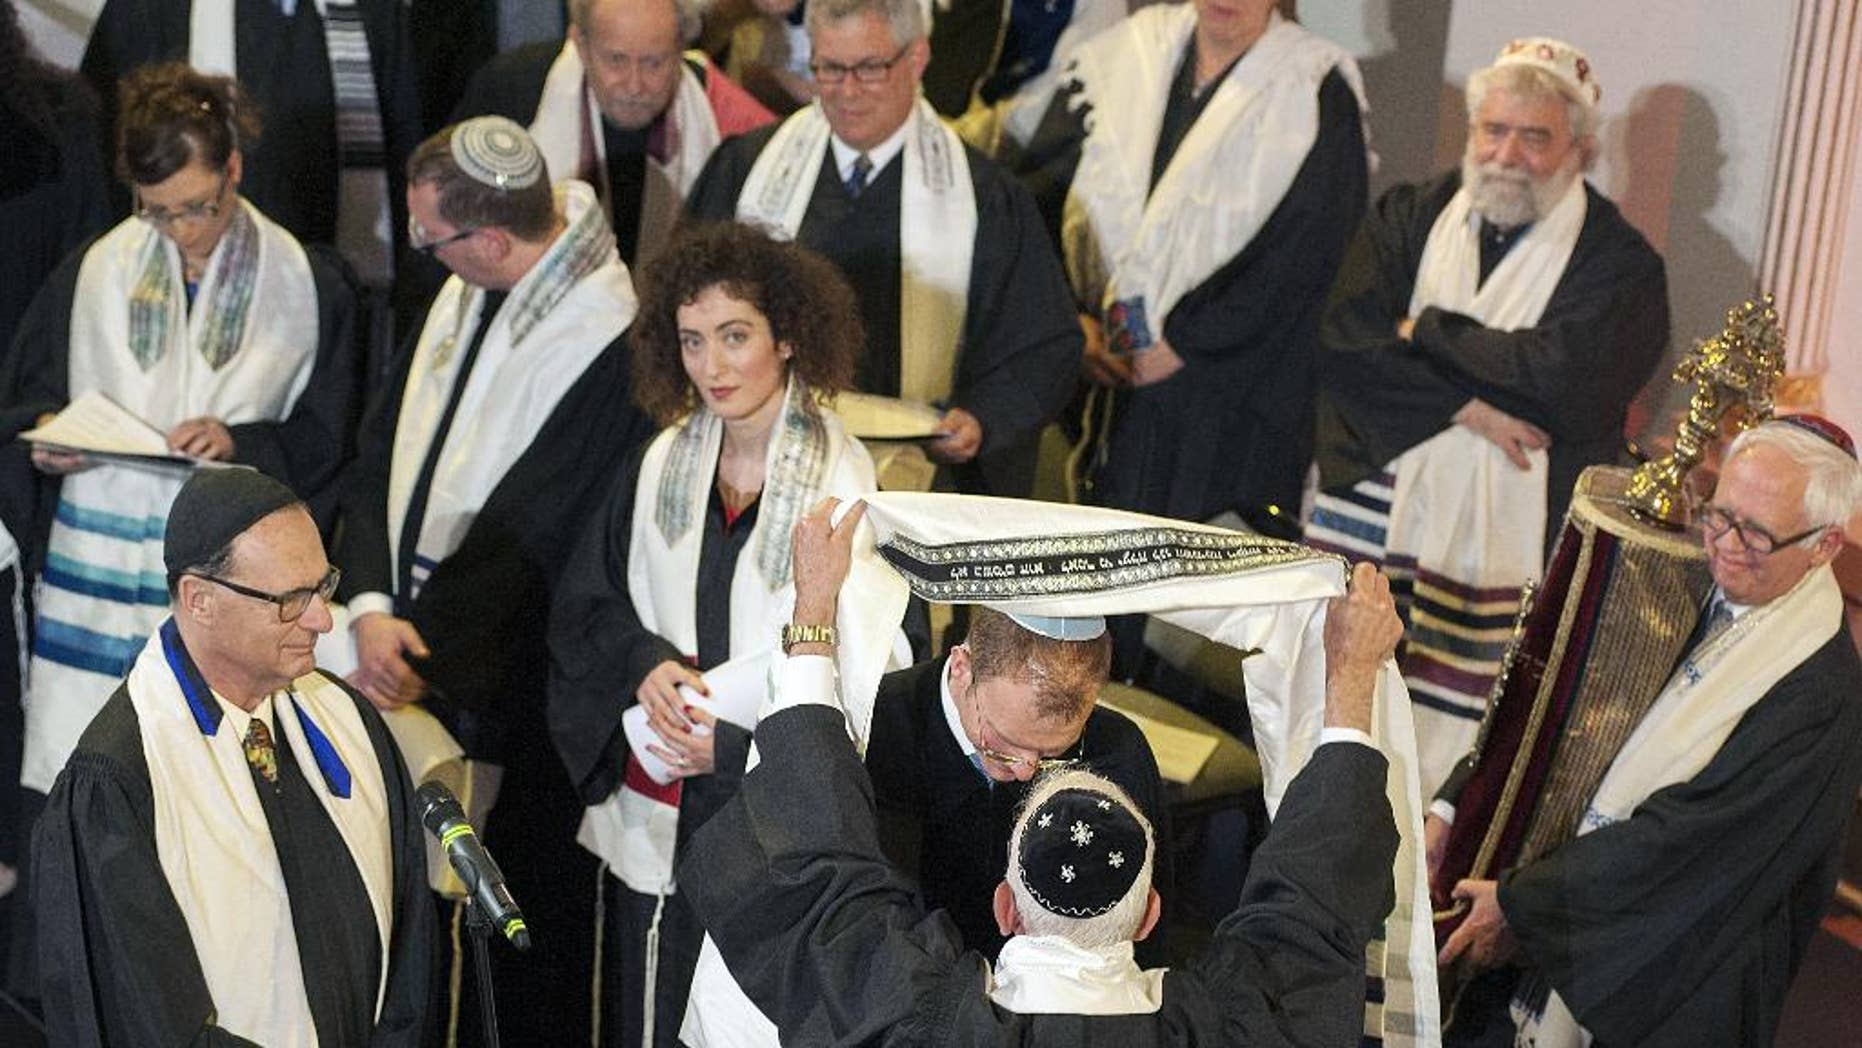 President of the Abraham Geiger College Rabbi Prof. Walter Jacob, front center, presides during the Rabbi ordination at the White Stork synagogue in Wroclaw, Poland,Tuesday, Sept. 2 2014. The ordination of four rabbis and three cantors, graduates of Abraham Geiger College at the Potsdam University, in Wroclaw, commemorates the 140th anniversary of the death of Rabbi Abraham Geiger, who held his office during 1838-1863 in the White Stork Synagogue. (AP Photo)